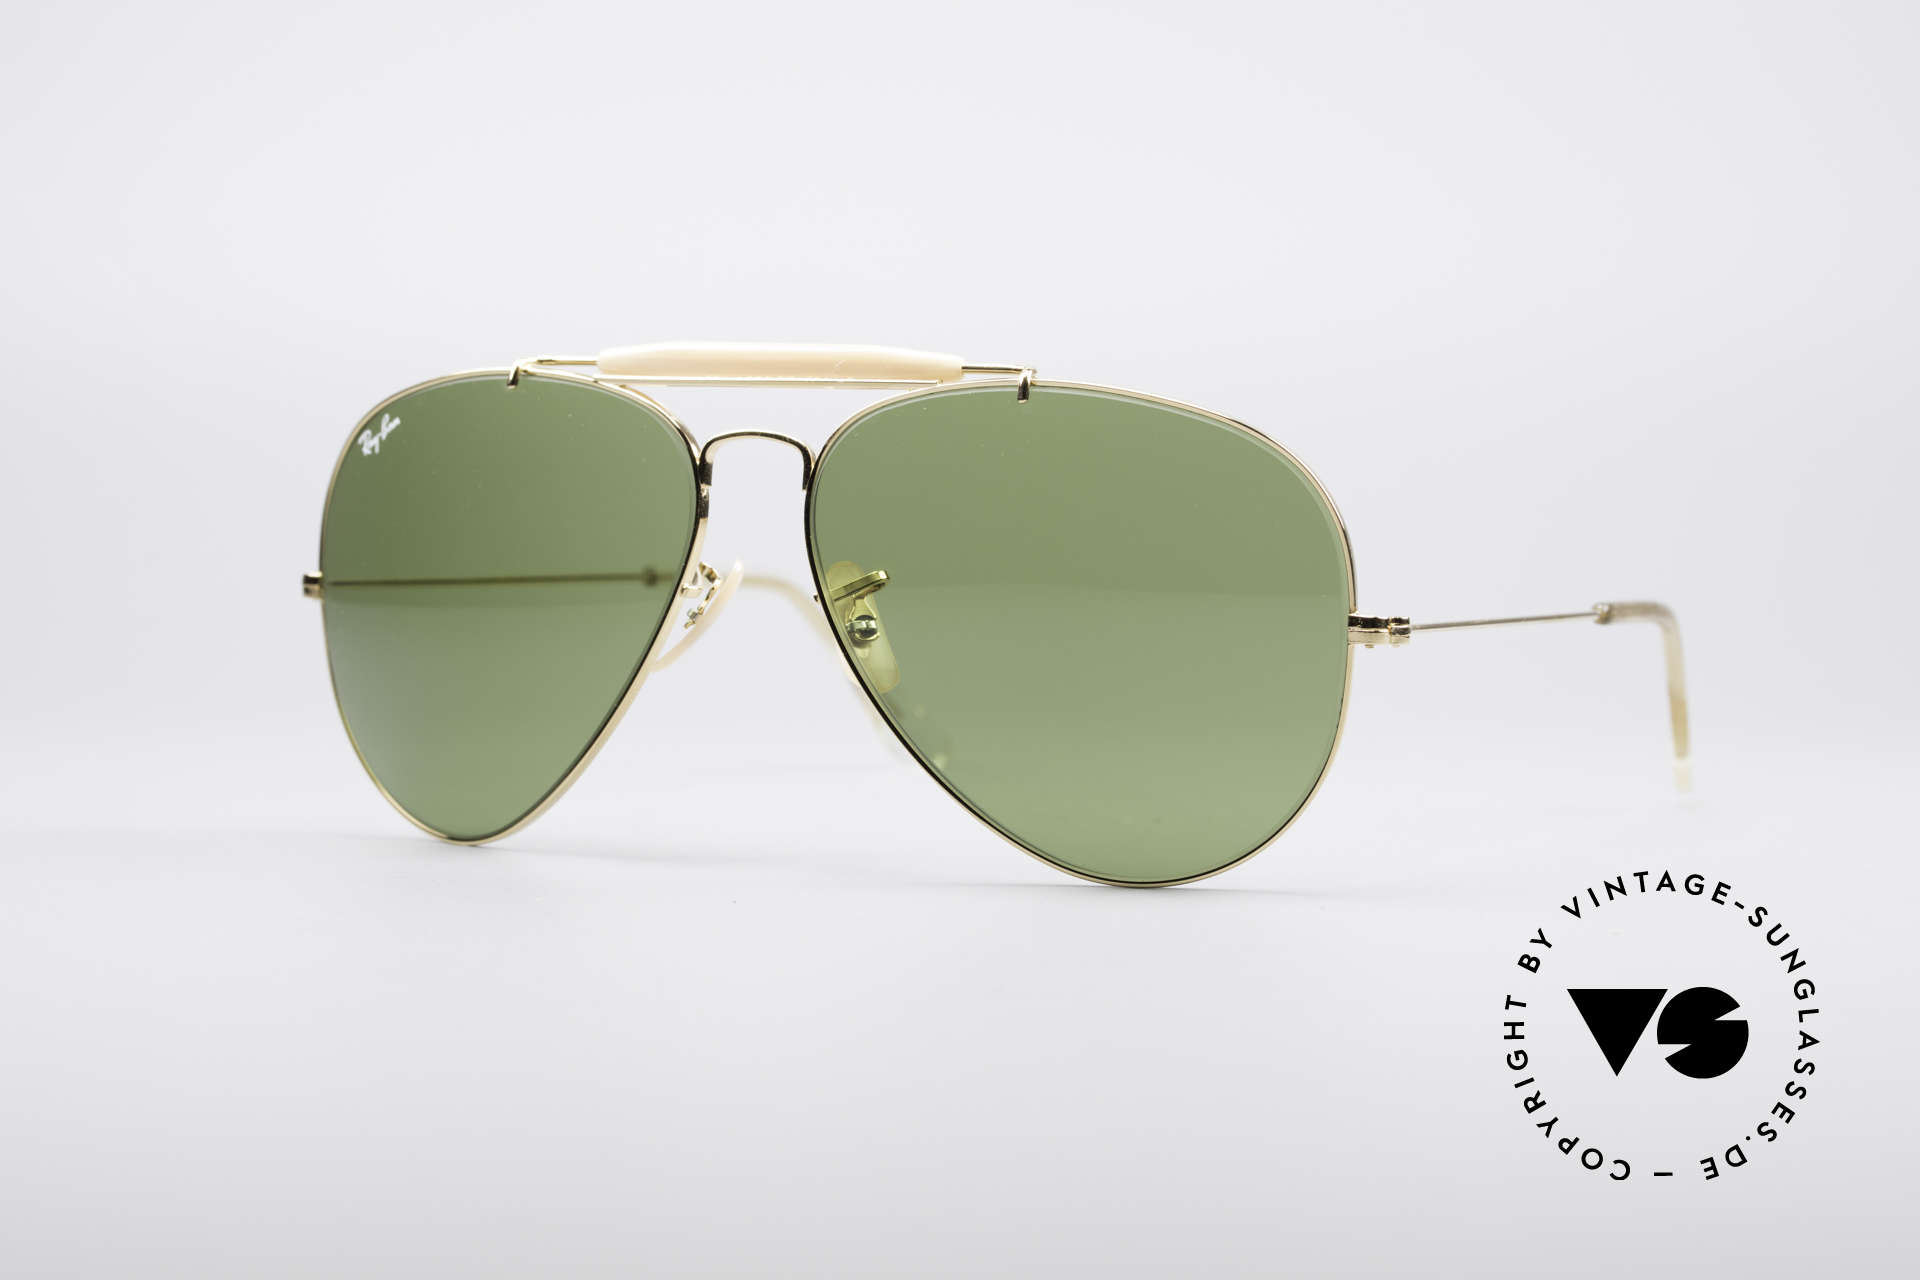 Ray Ban Outdoorsman II B&L USA Shades 80's Vintage, the classic Ray Ban USA sunglasses par excellence, Made for Men